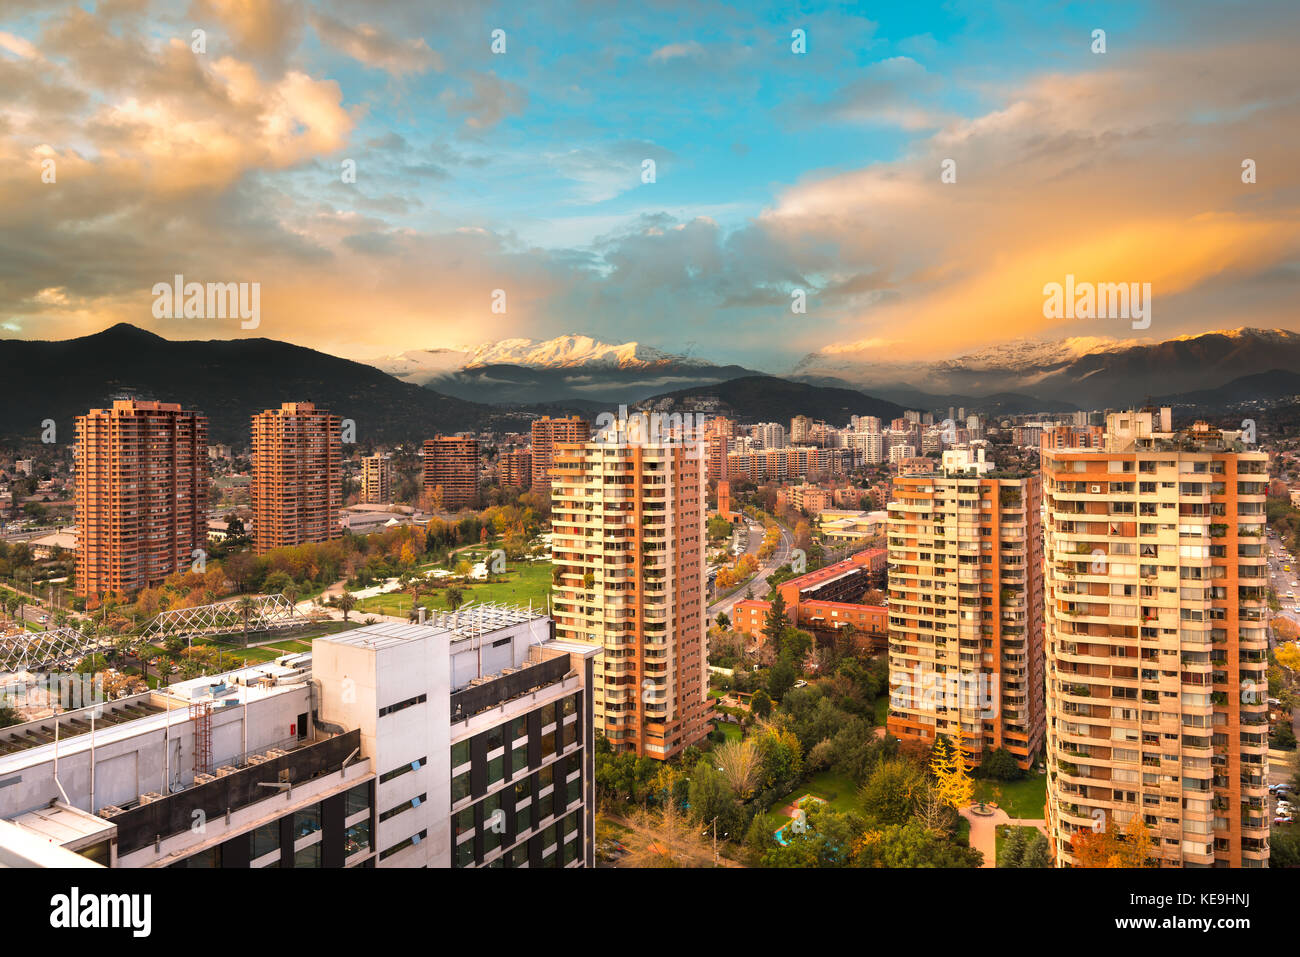 Skyline of buildings at a wealthy neighborhood in Las Condes district, Santiago de Chile - Stock Image